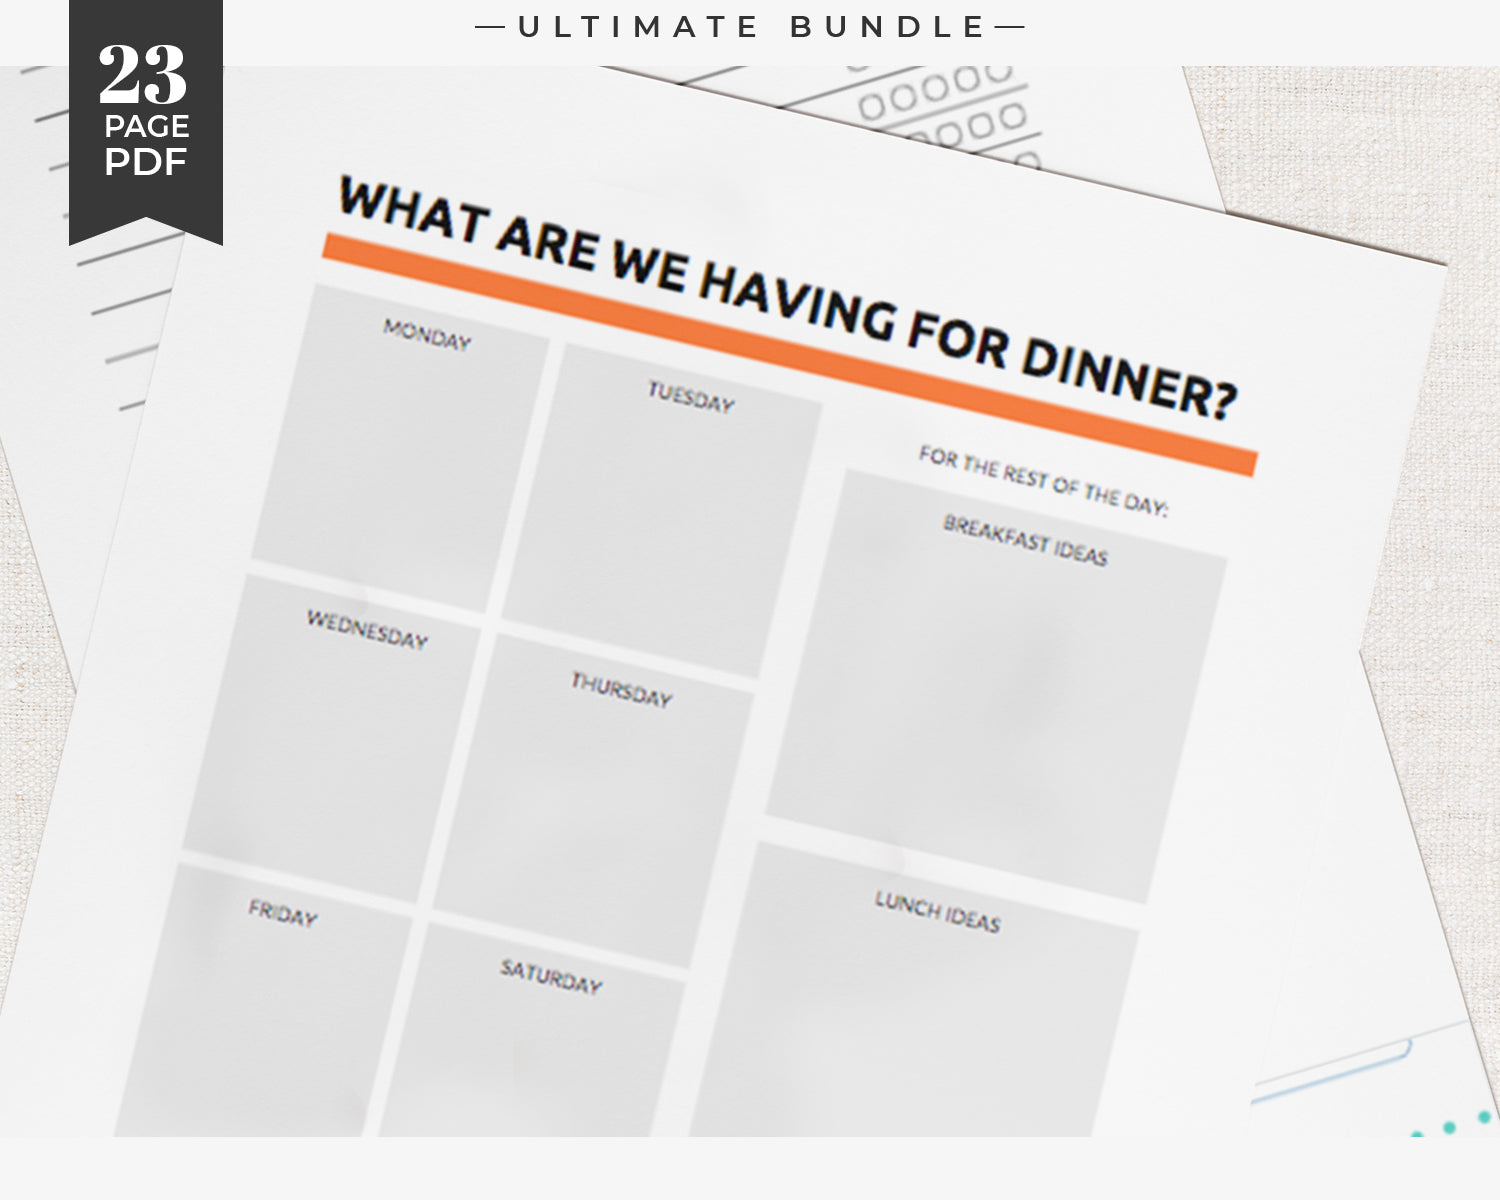 The Ultimate Kitchen Bundle